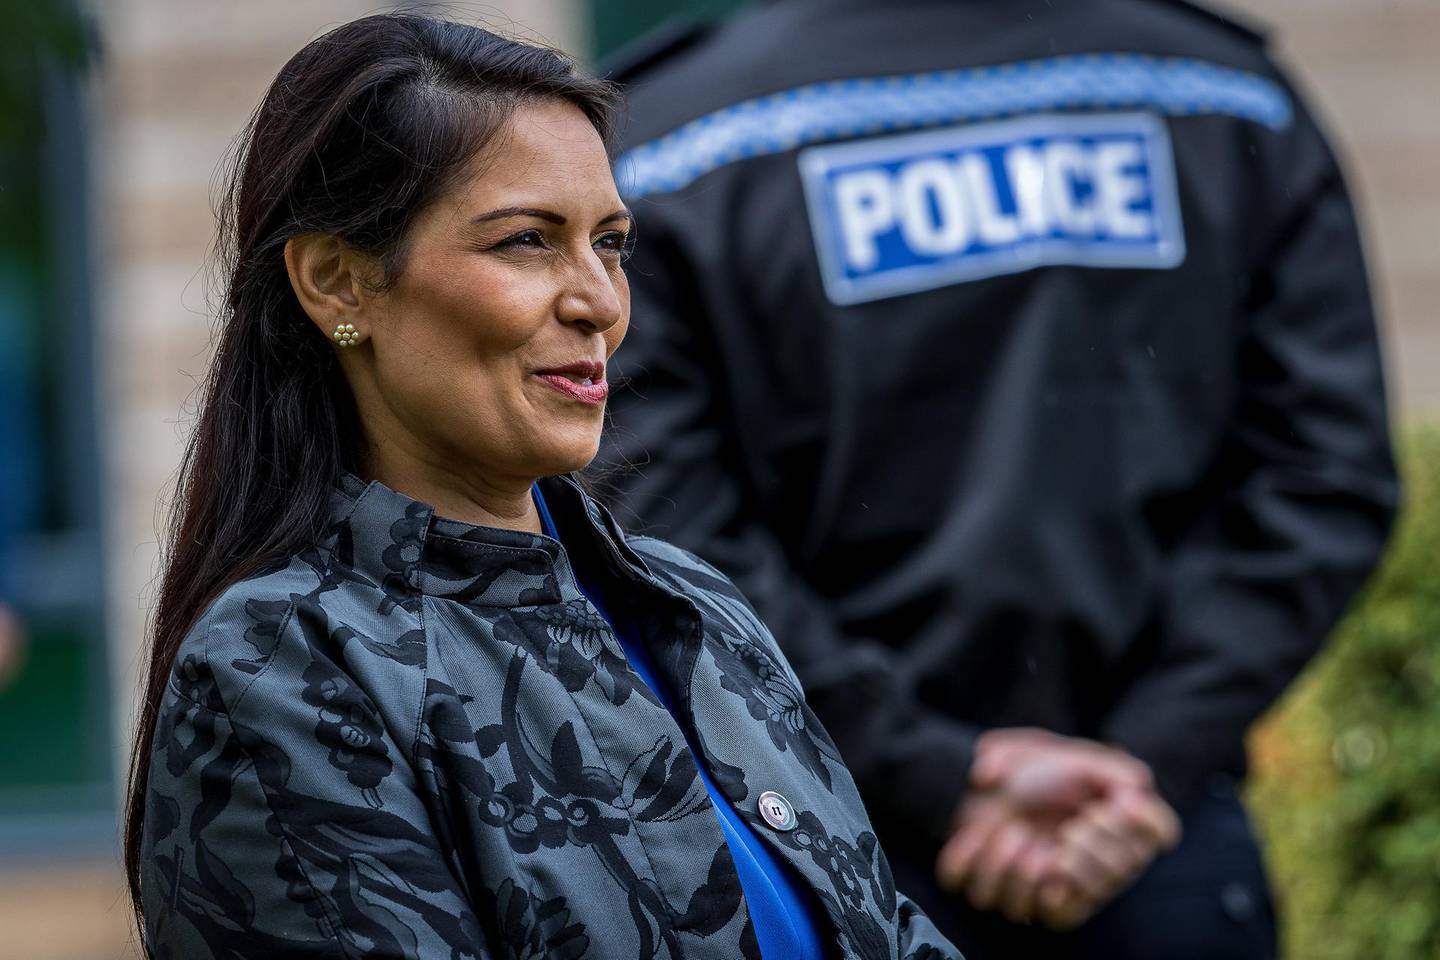 Britain's Home Secretary Priti Patel visits the North Yorkshire Police headquarters in Northallerton, northeast England on July 30, 2020. / AFP / POOL / Charlotte Graham